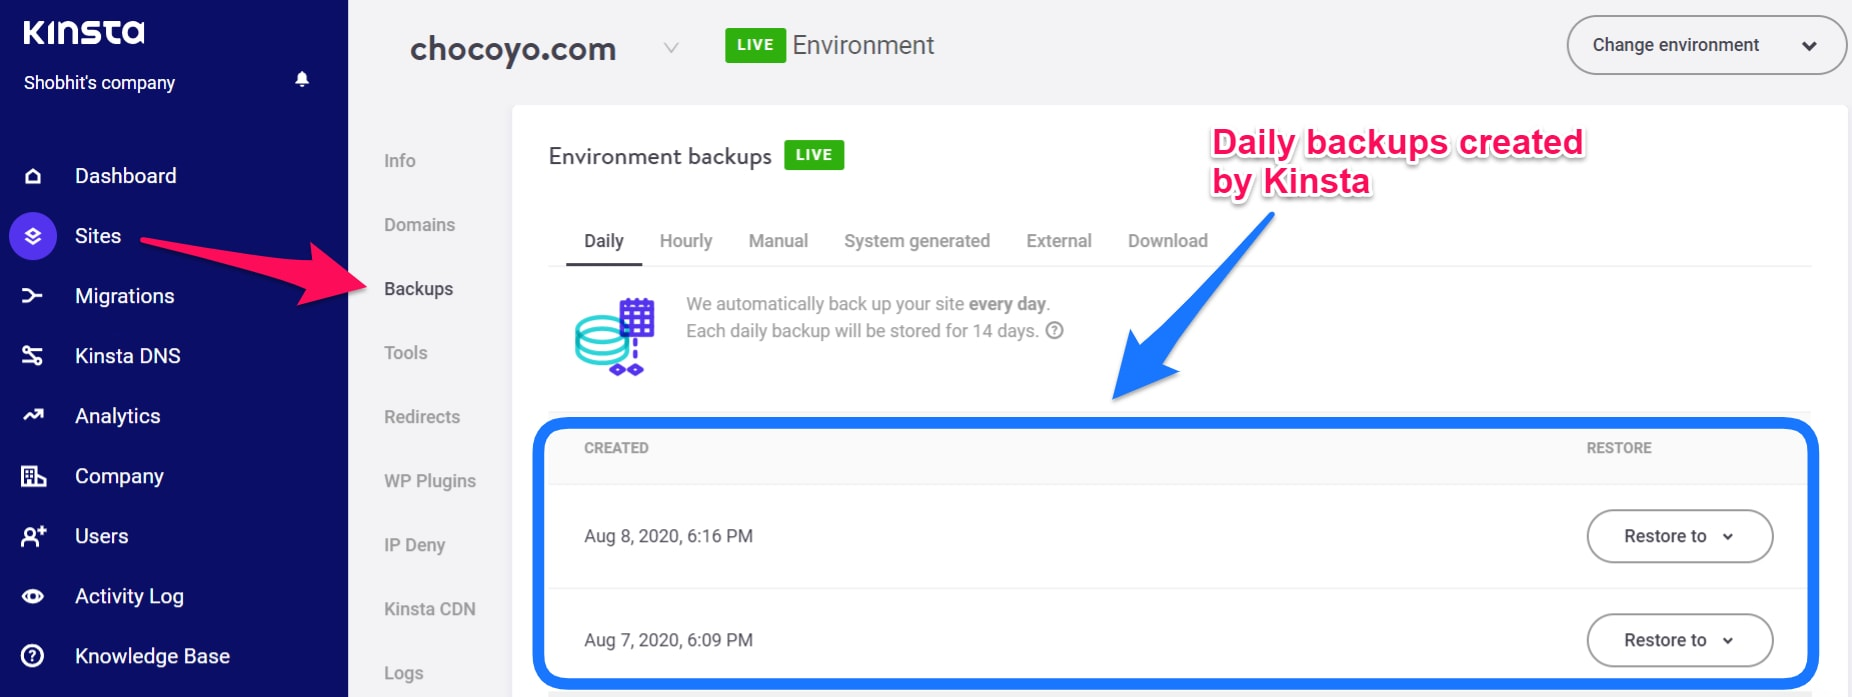 Kinsta Features and review with Daily Backups